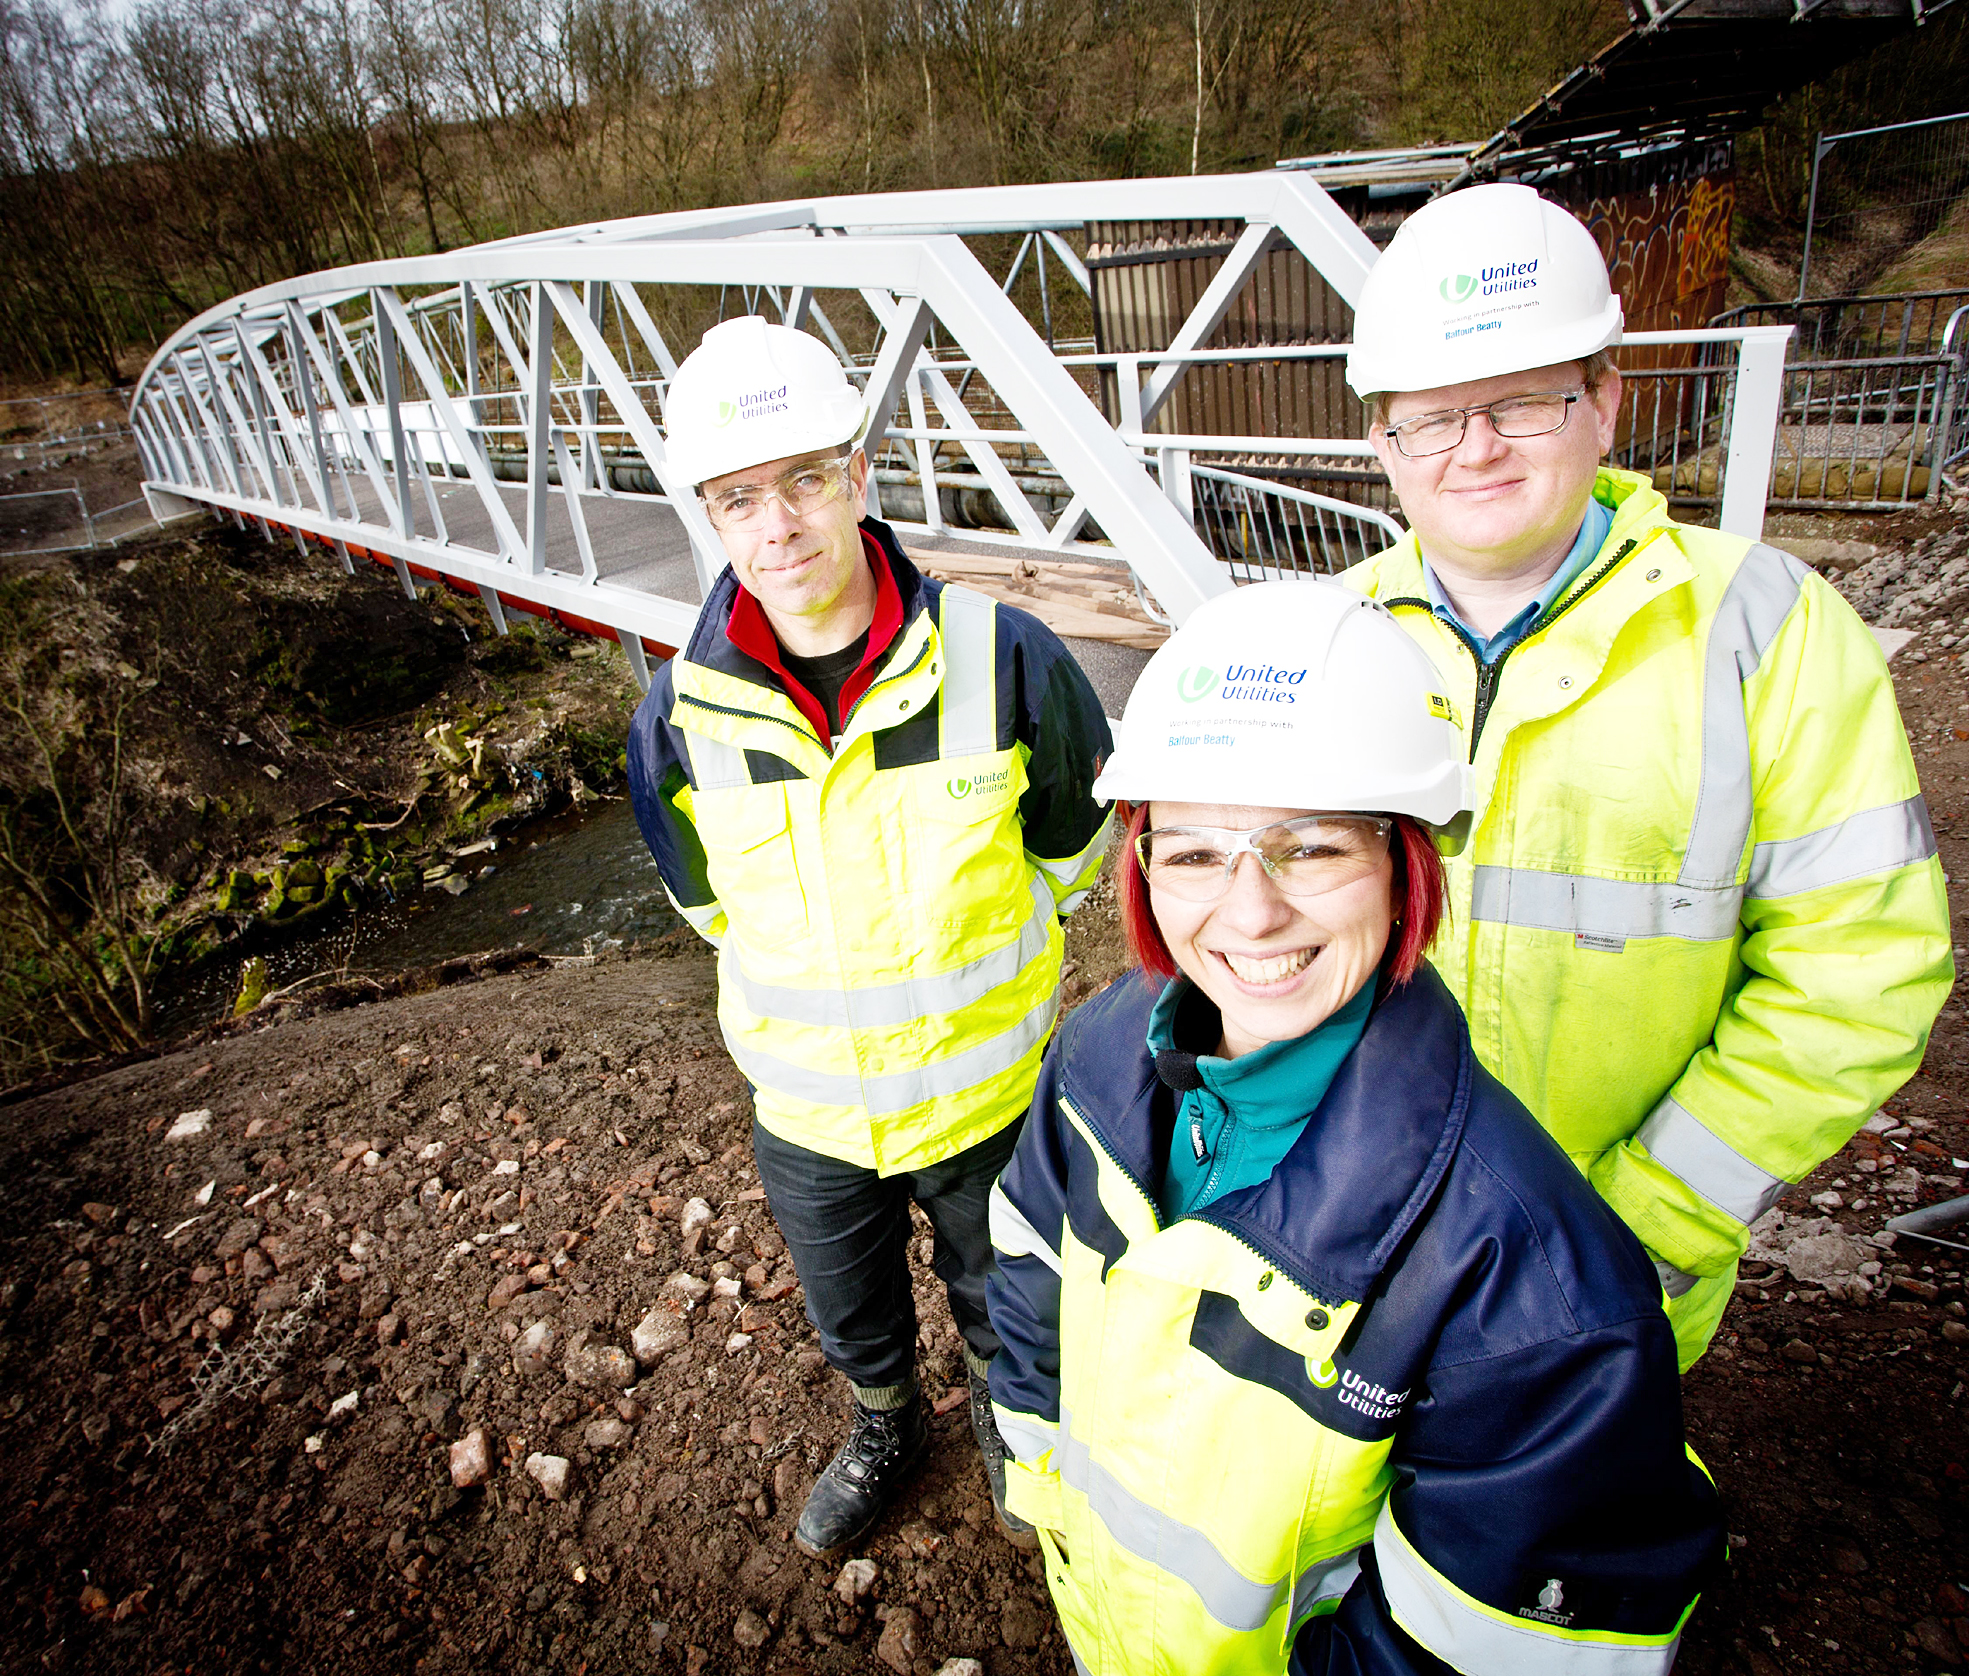 Bridge connecting Farnworth, Kearsley and Little Lever almost complete